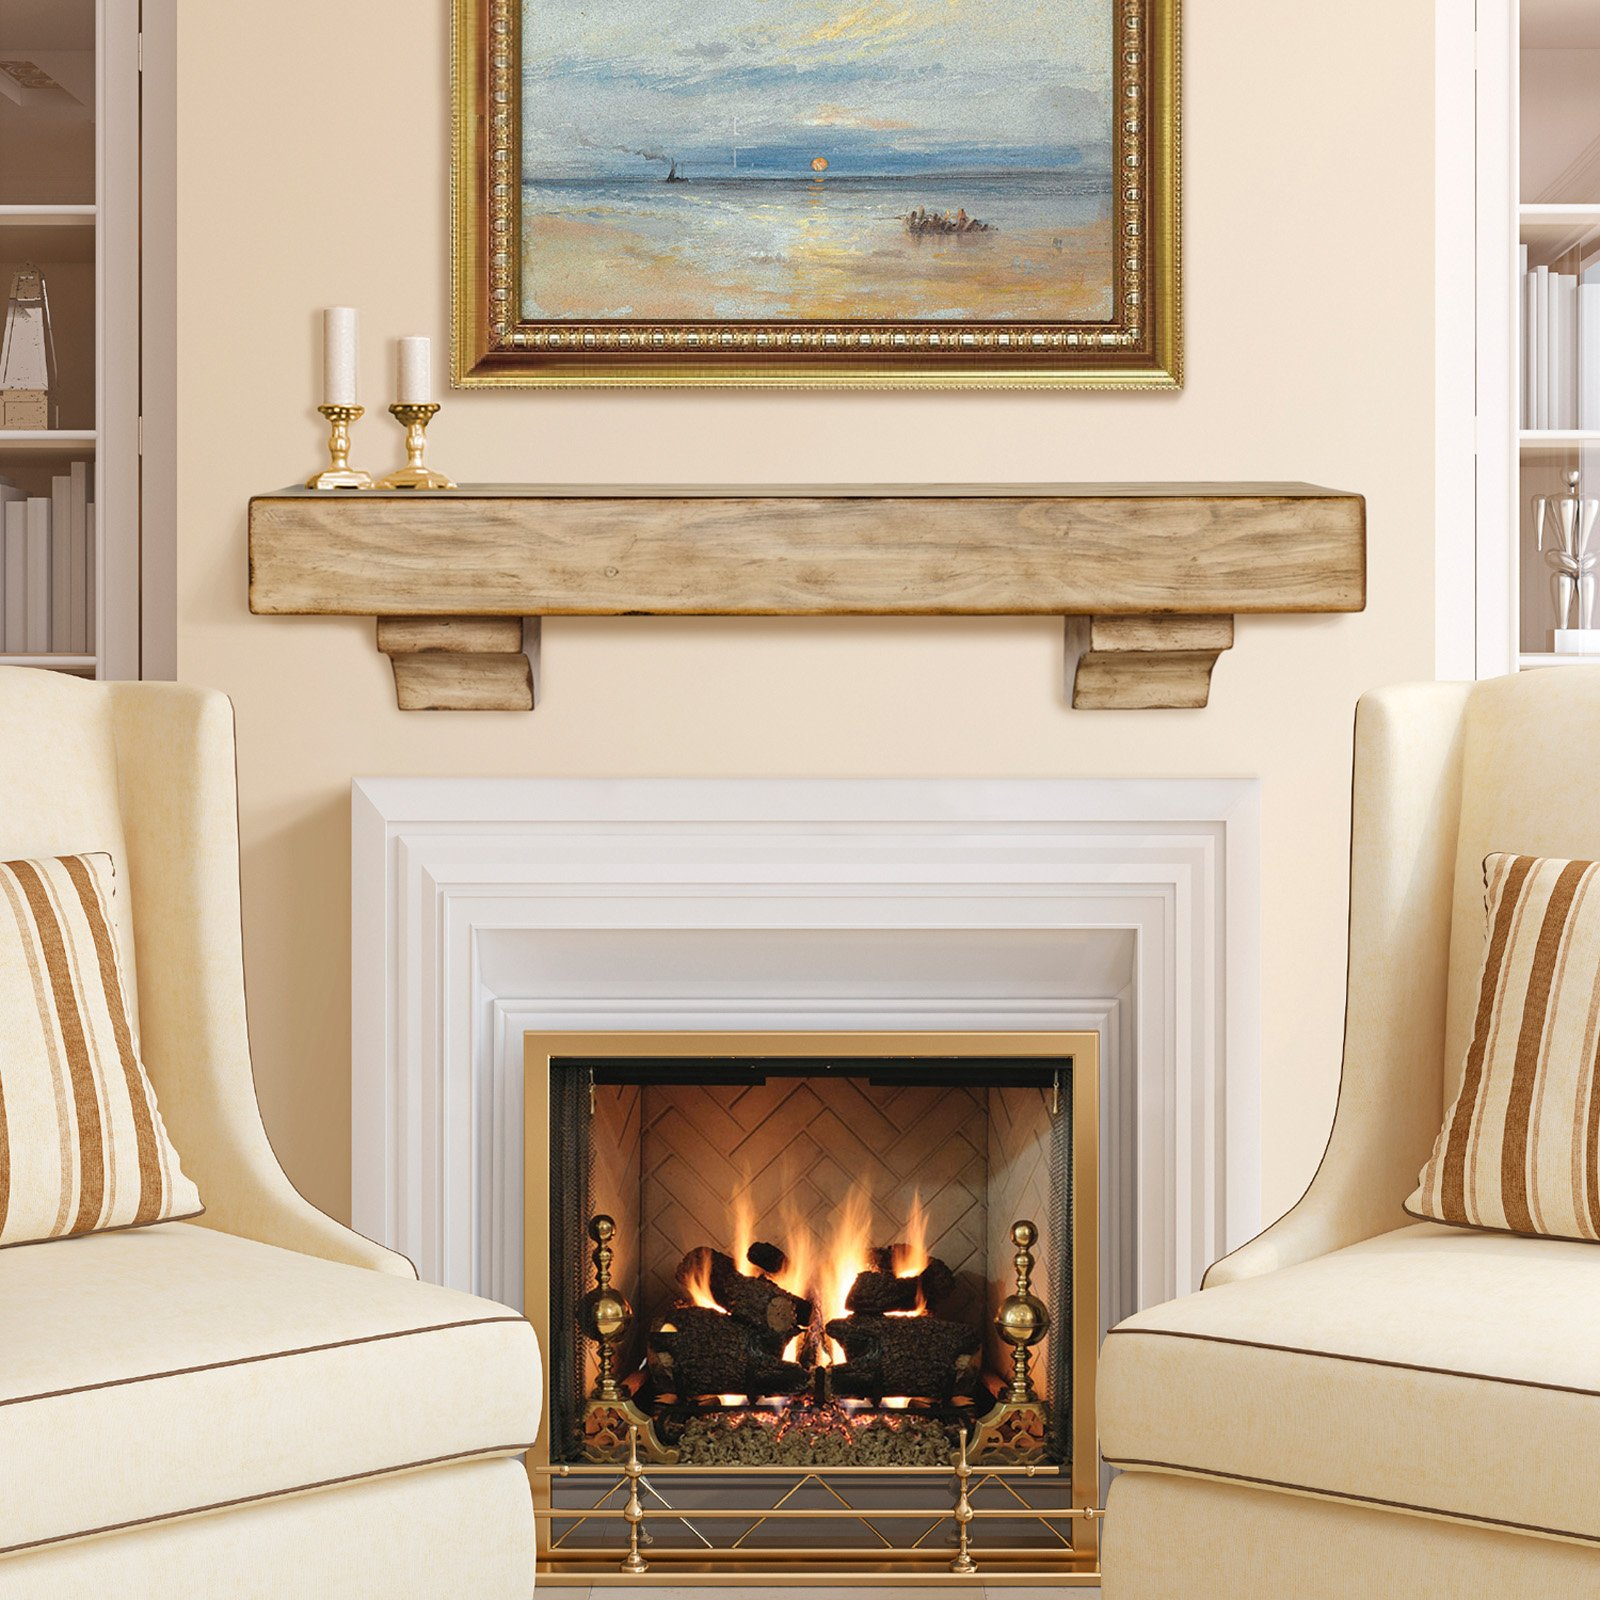 Beau How To Build A Fireplace Mantel Surround